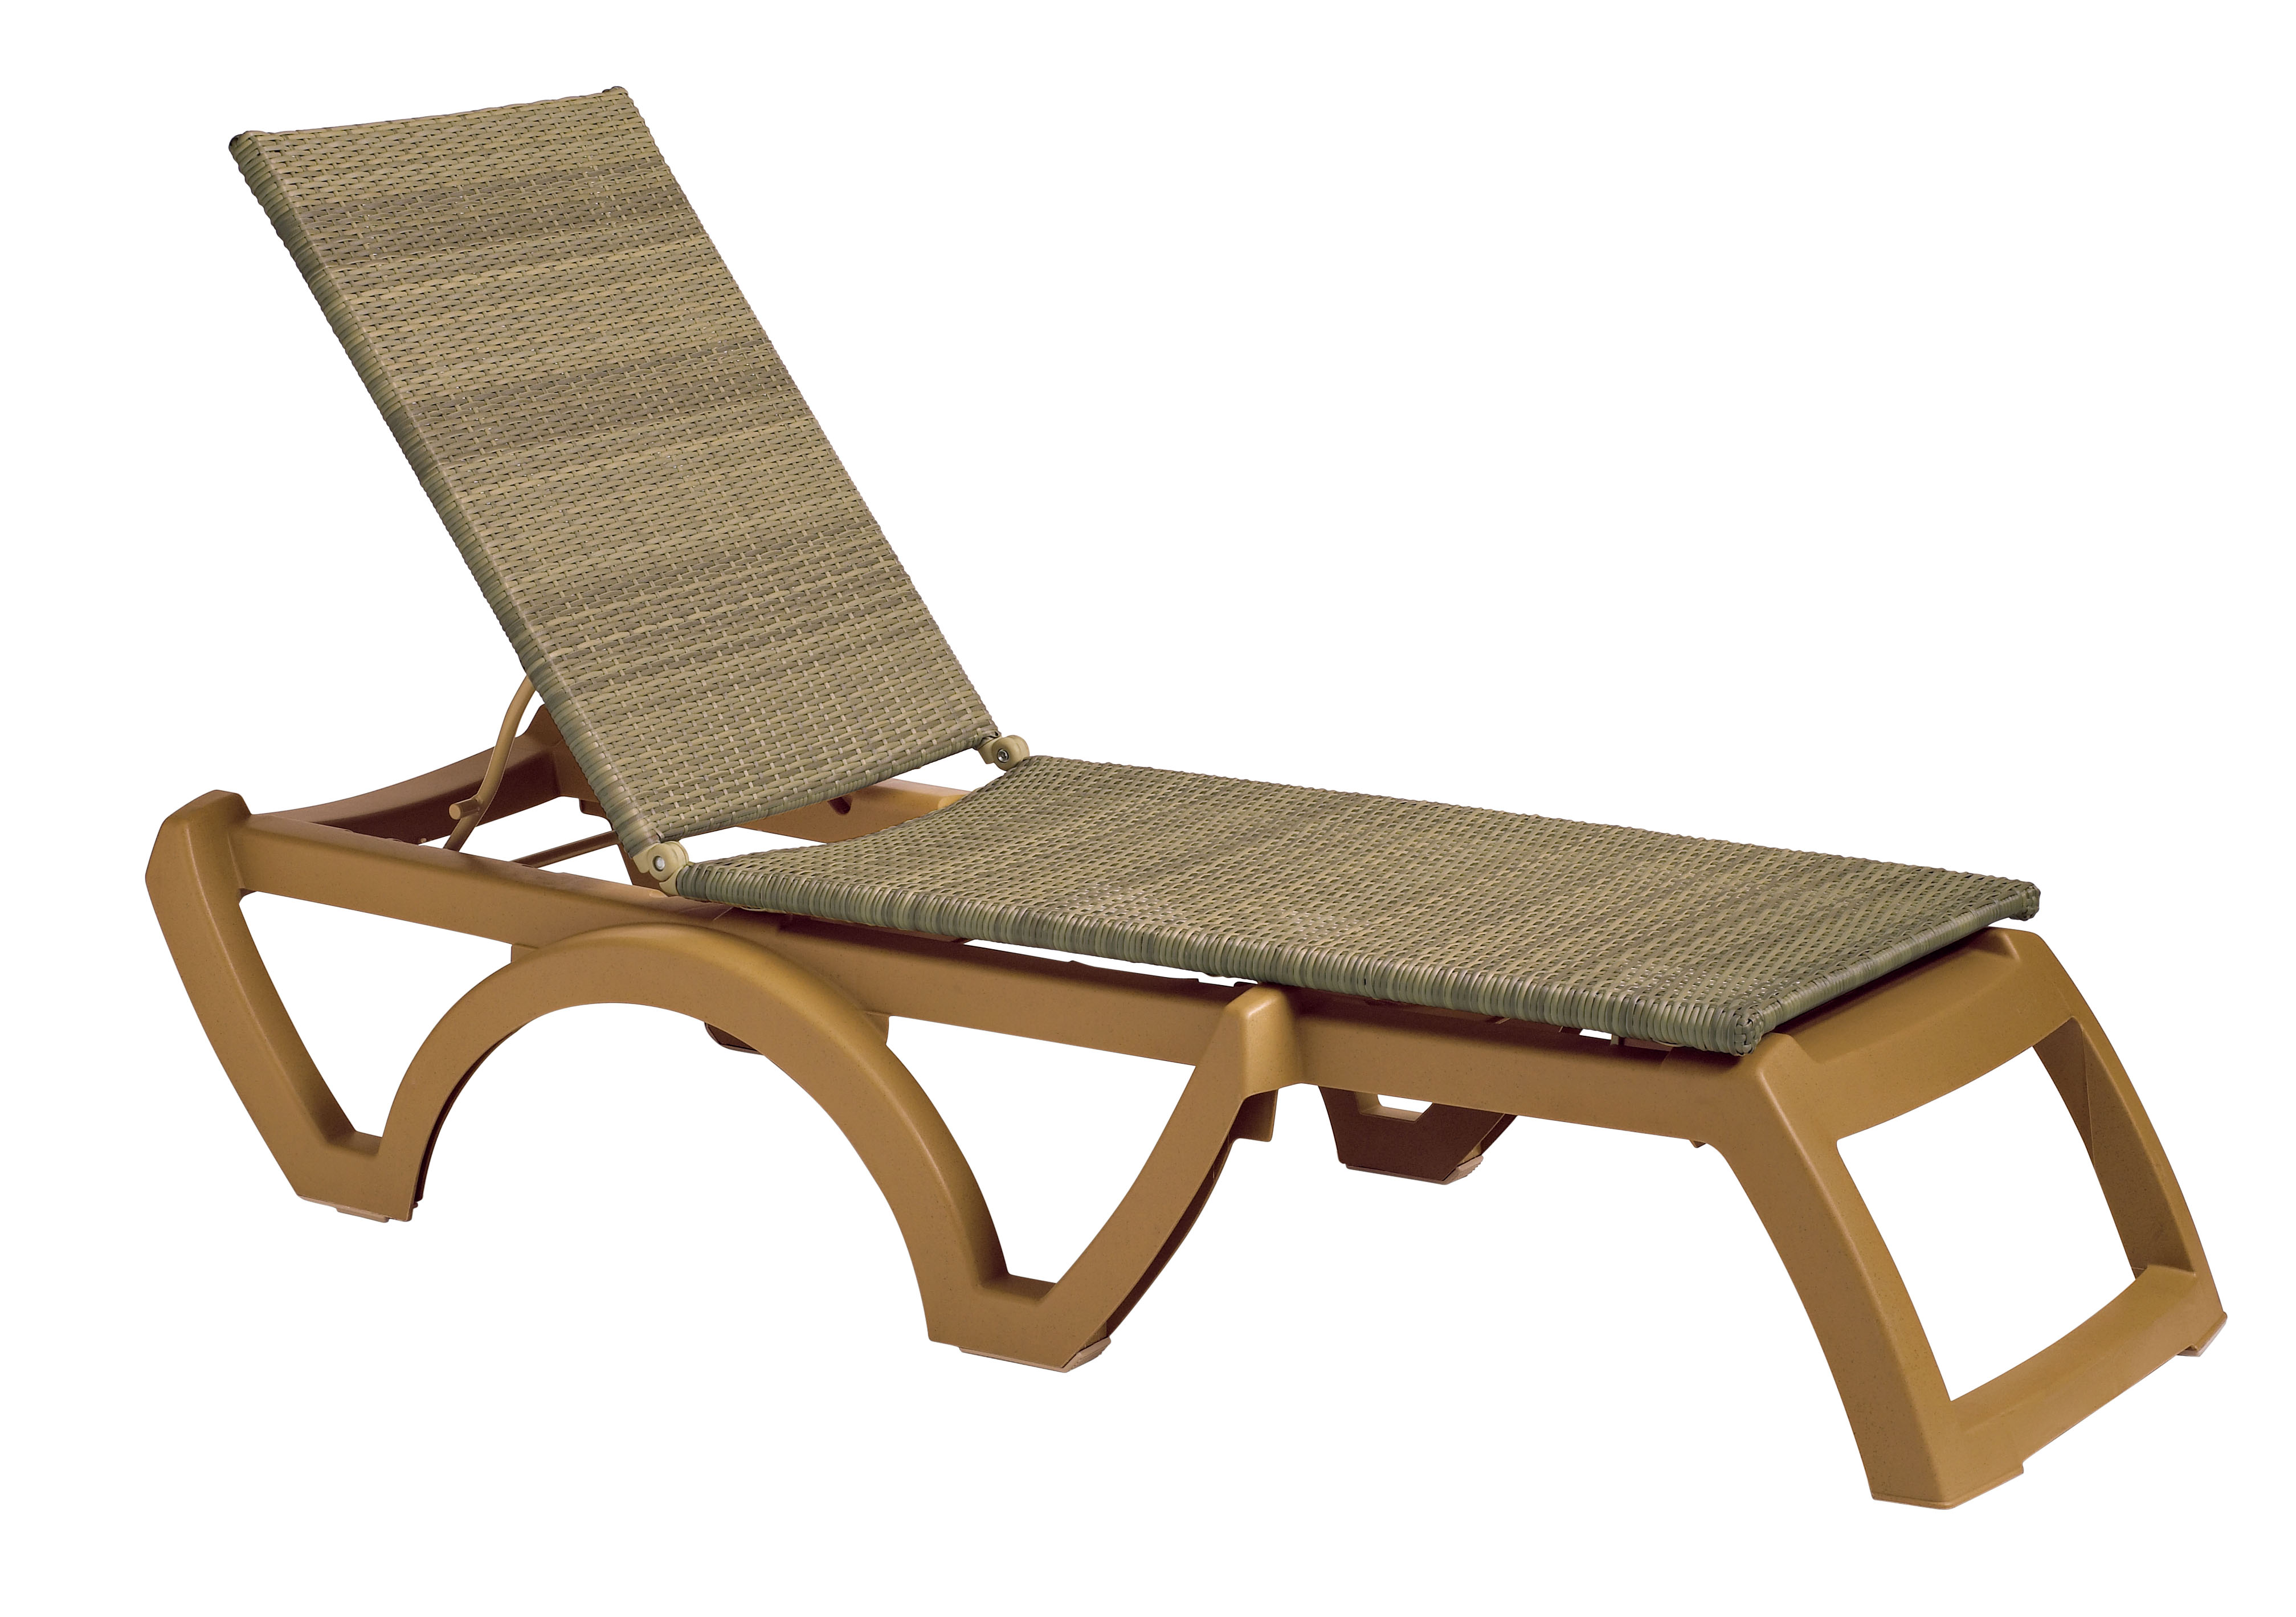 cheap plastic lounge chairs baby blue chair covers new java sling all weather wicker chaise et andt